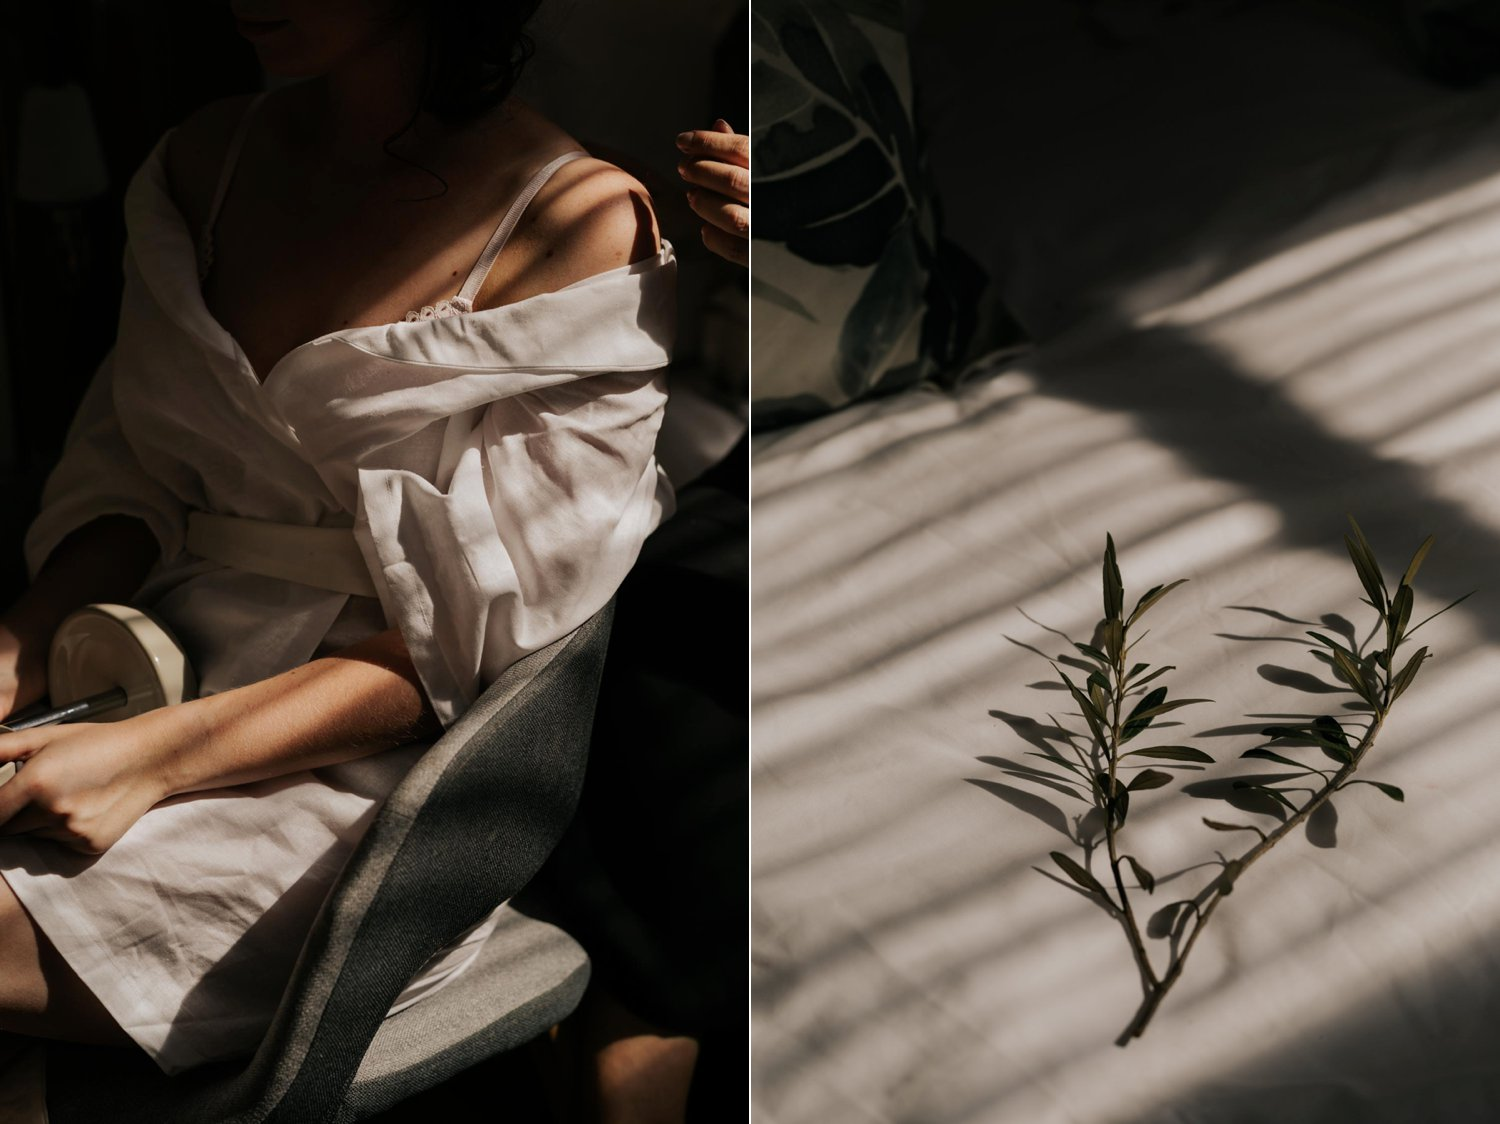 Artistic and creative wedding photo using interesting light and capturing details